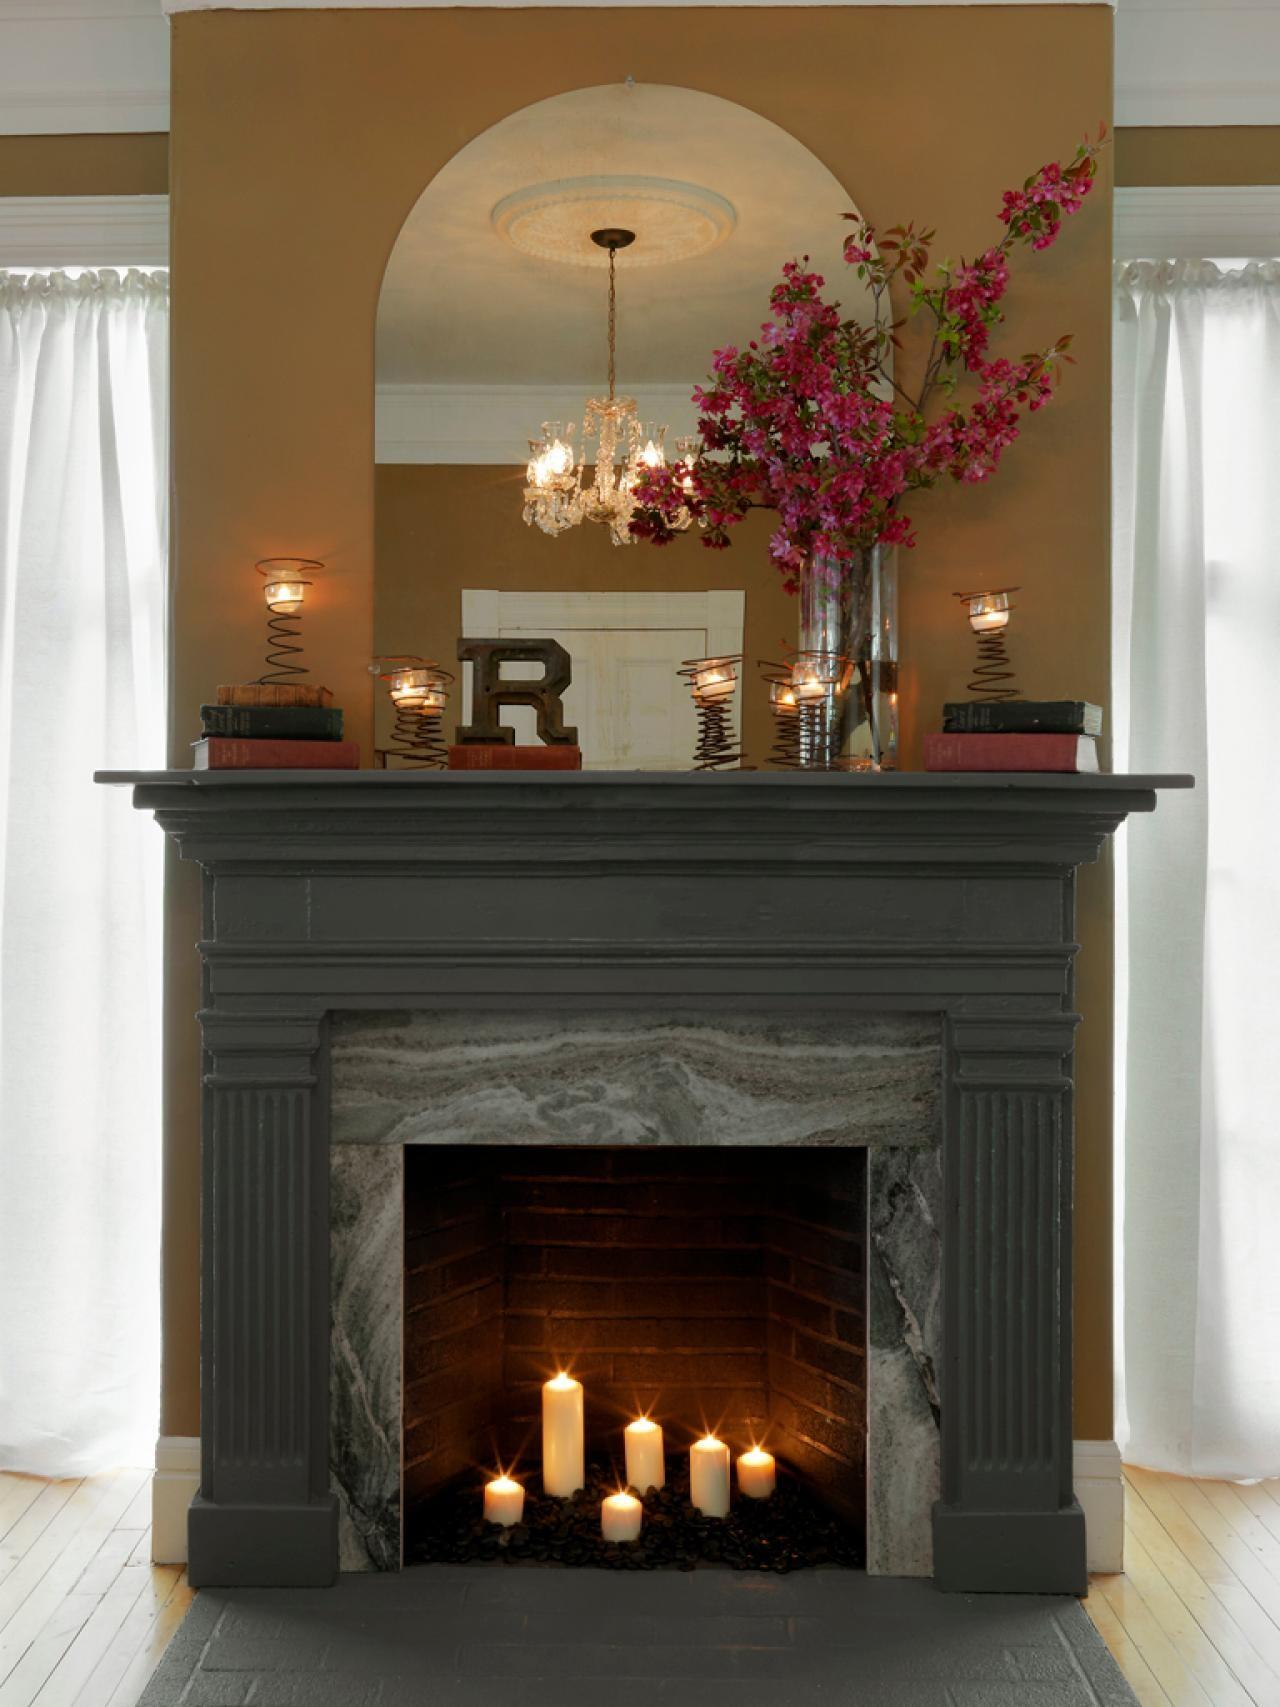 Cover Fireplace Surround Make Mantel